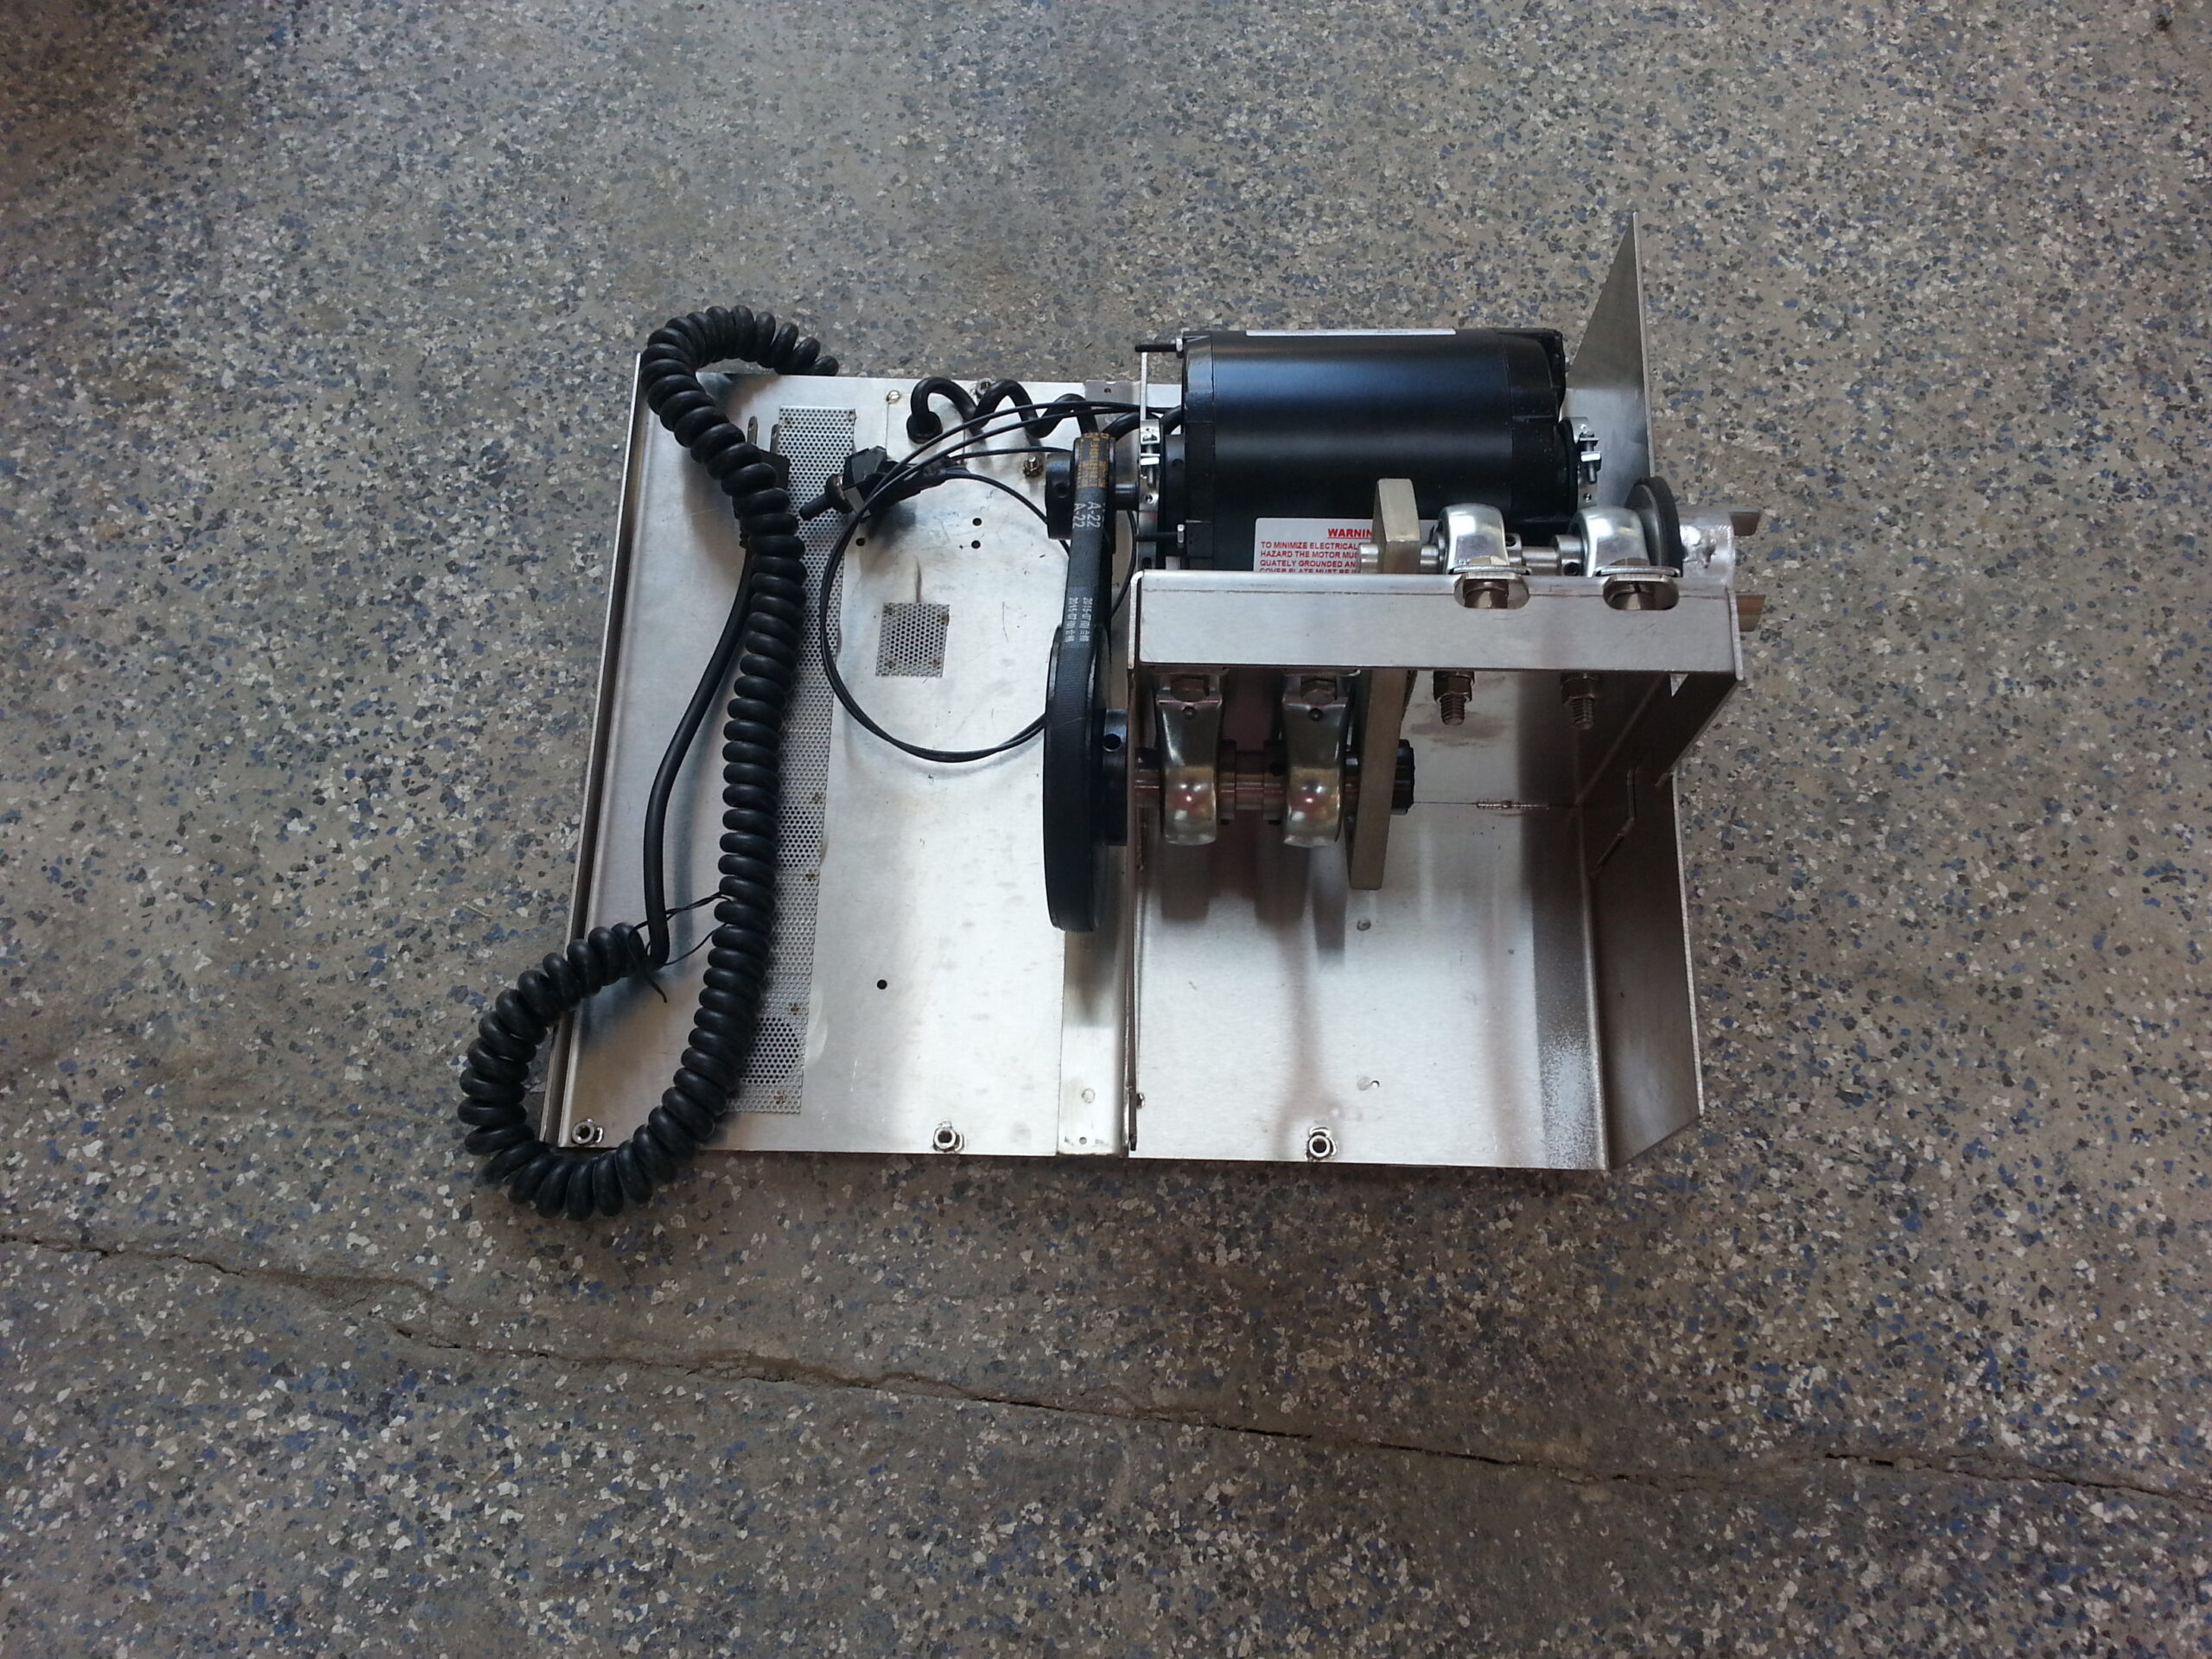 MOTOR PLATE ASSEMBLY - - INCLUDES ITEMS 4, 18, 20 - 49 #201233 Image